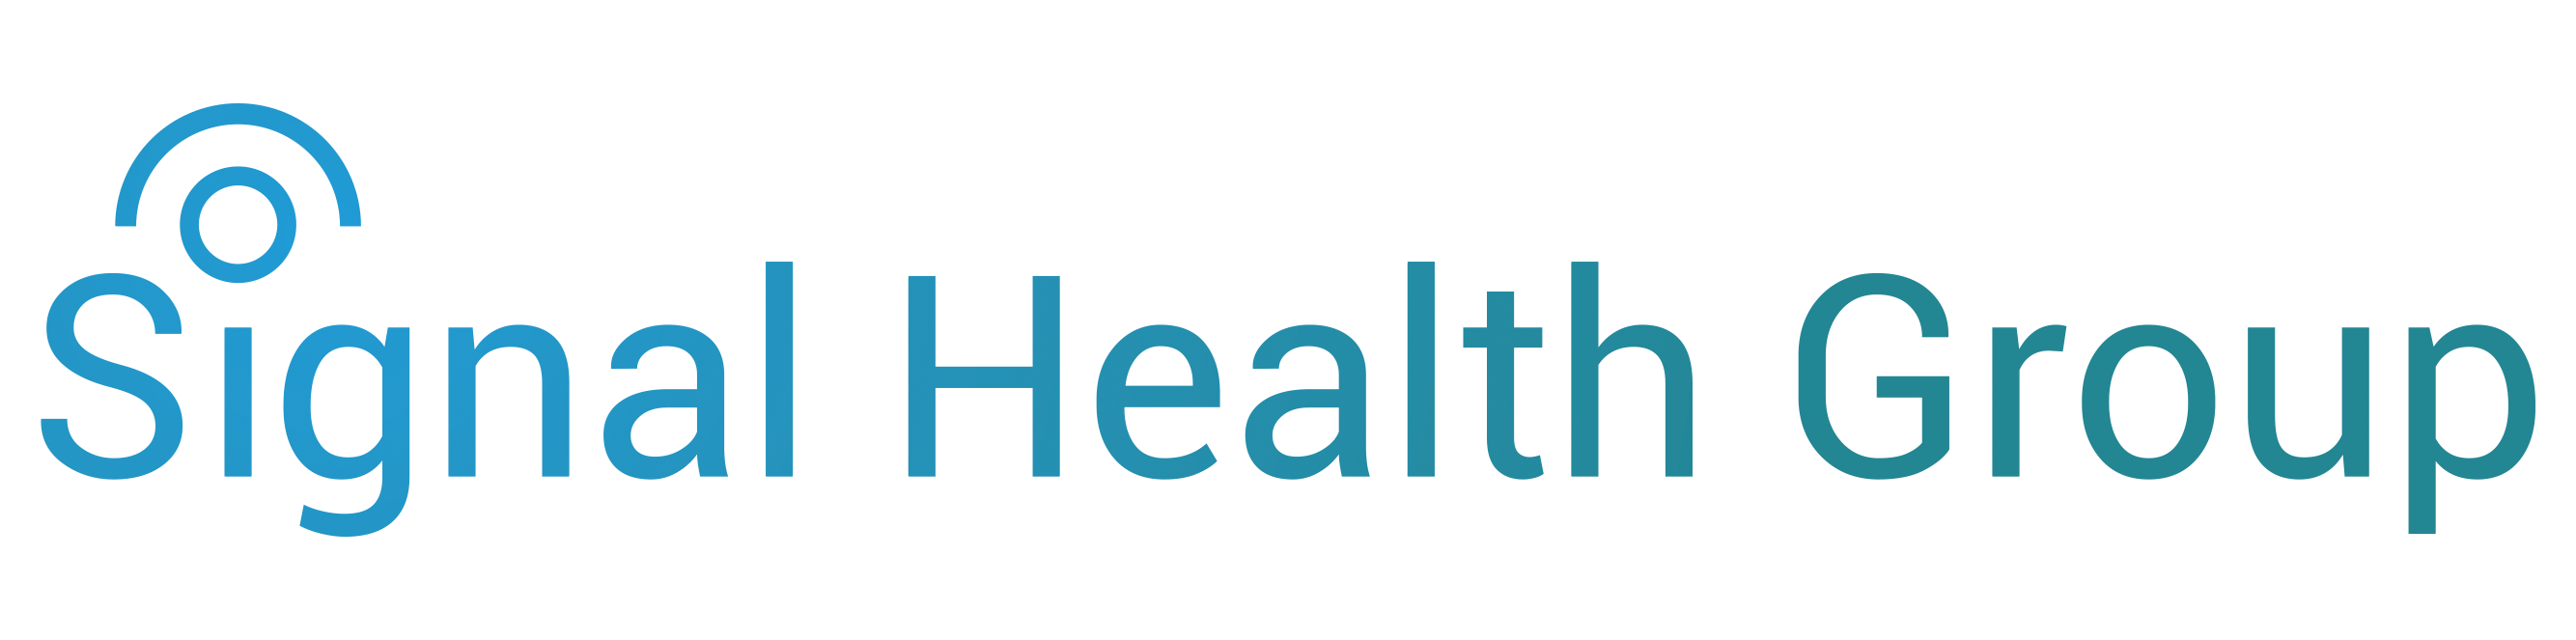 Signal Health Group